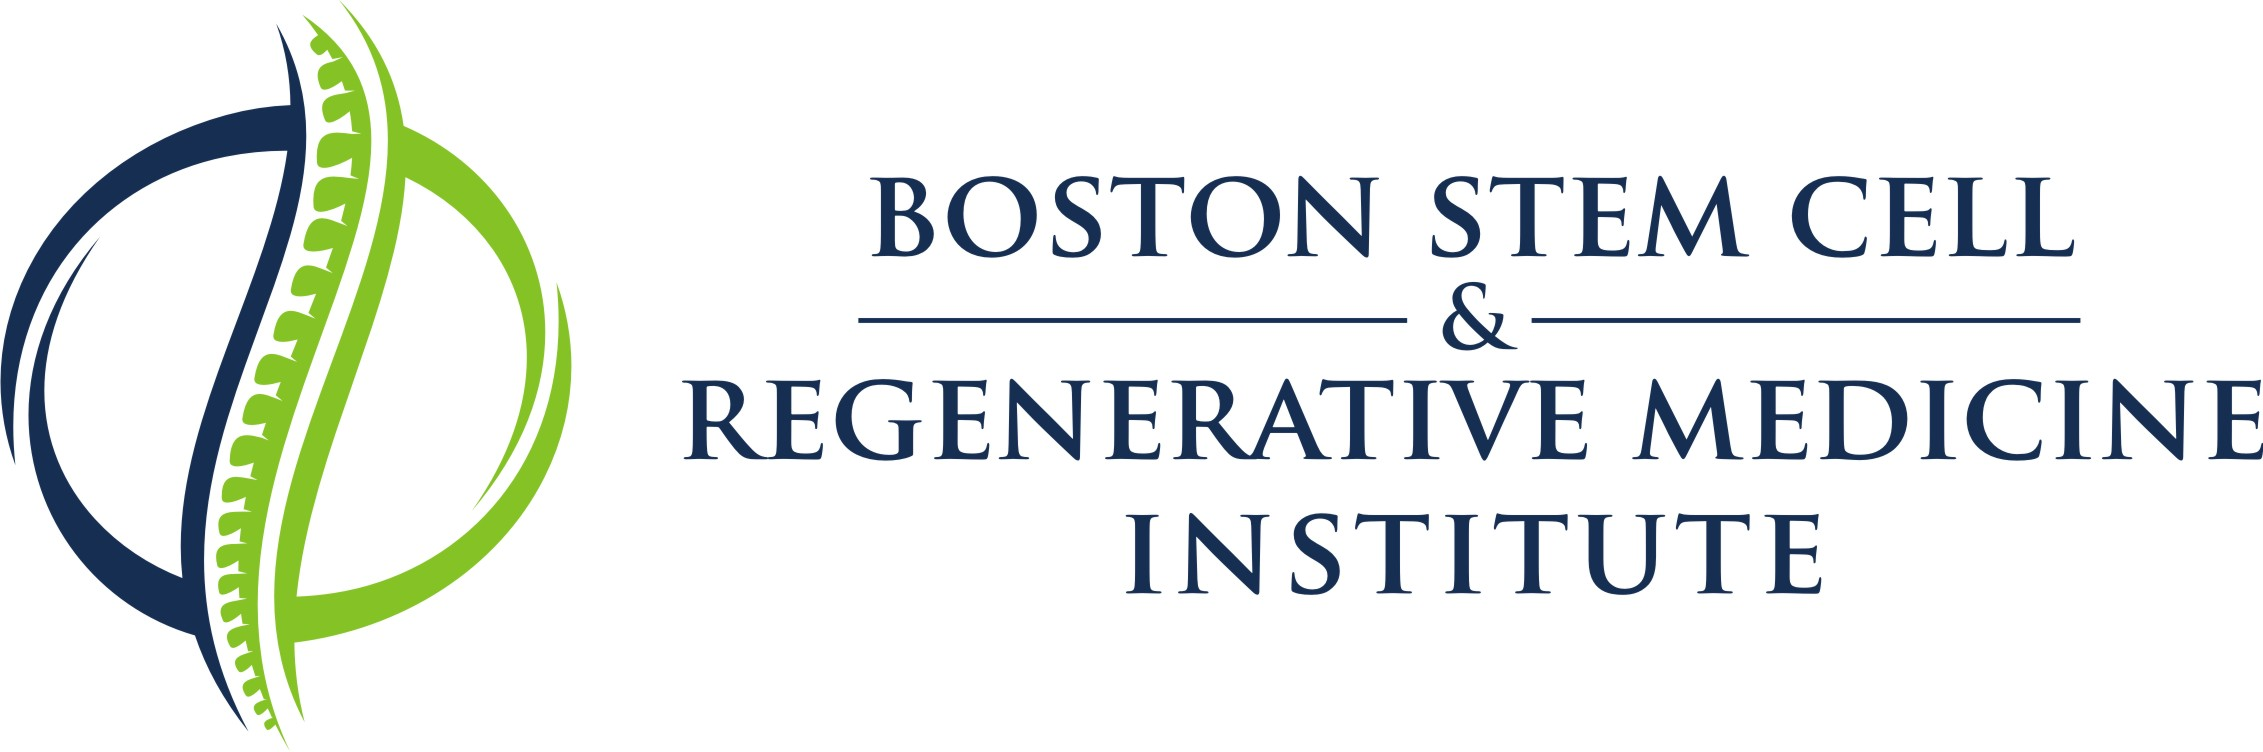 Boston Stem Cell and Regenerative Medicine Institute